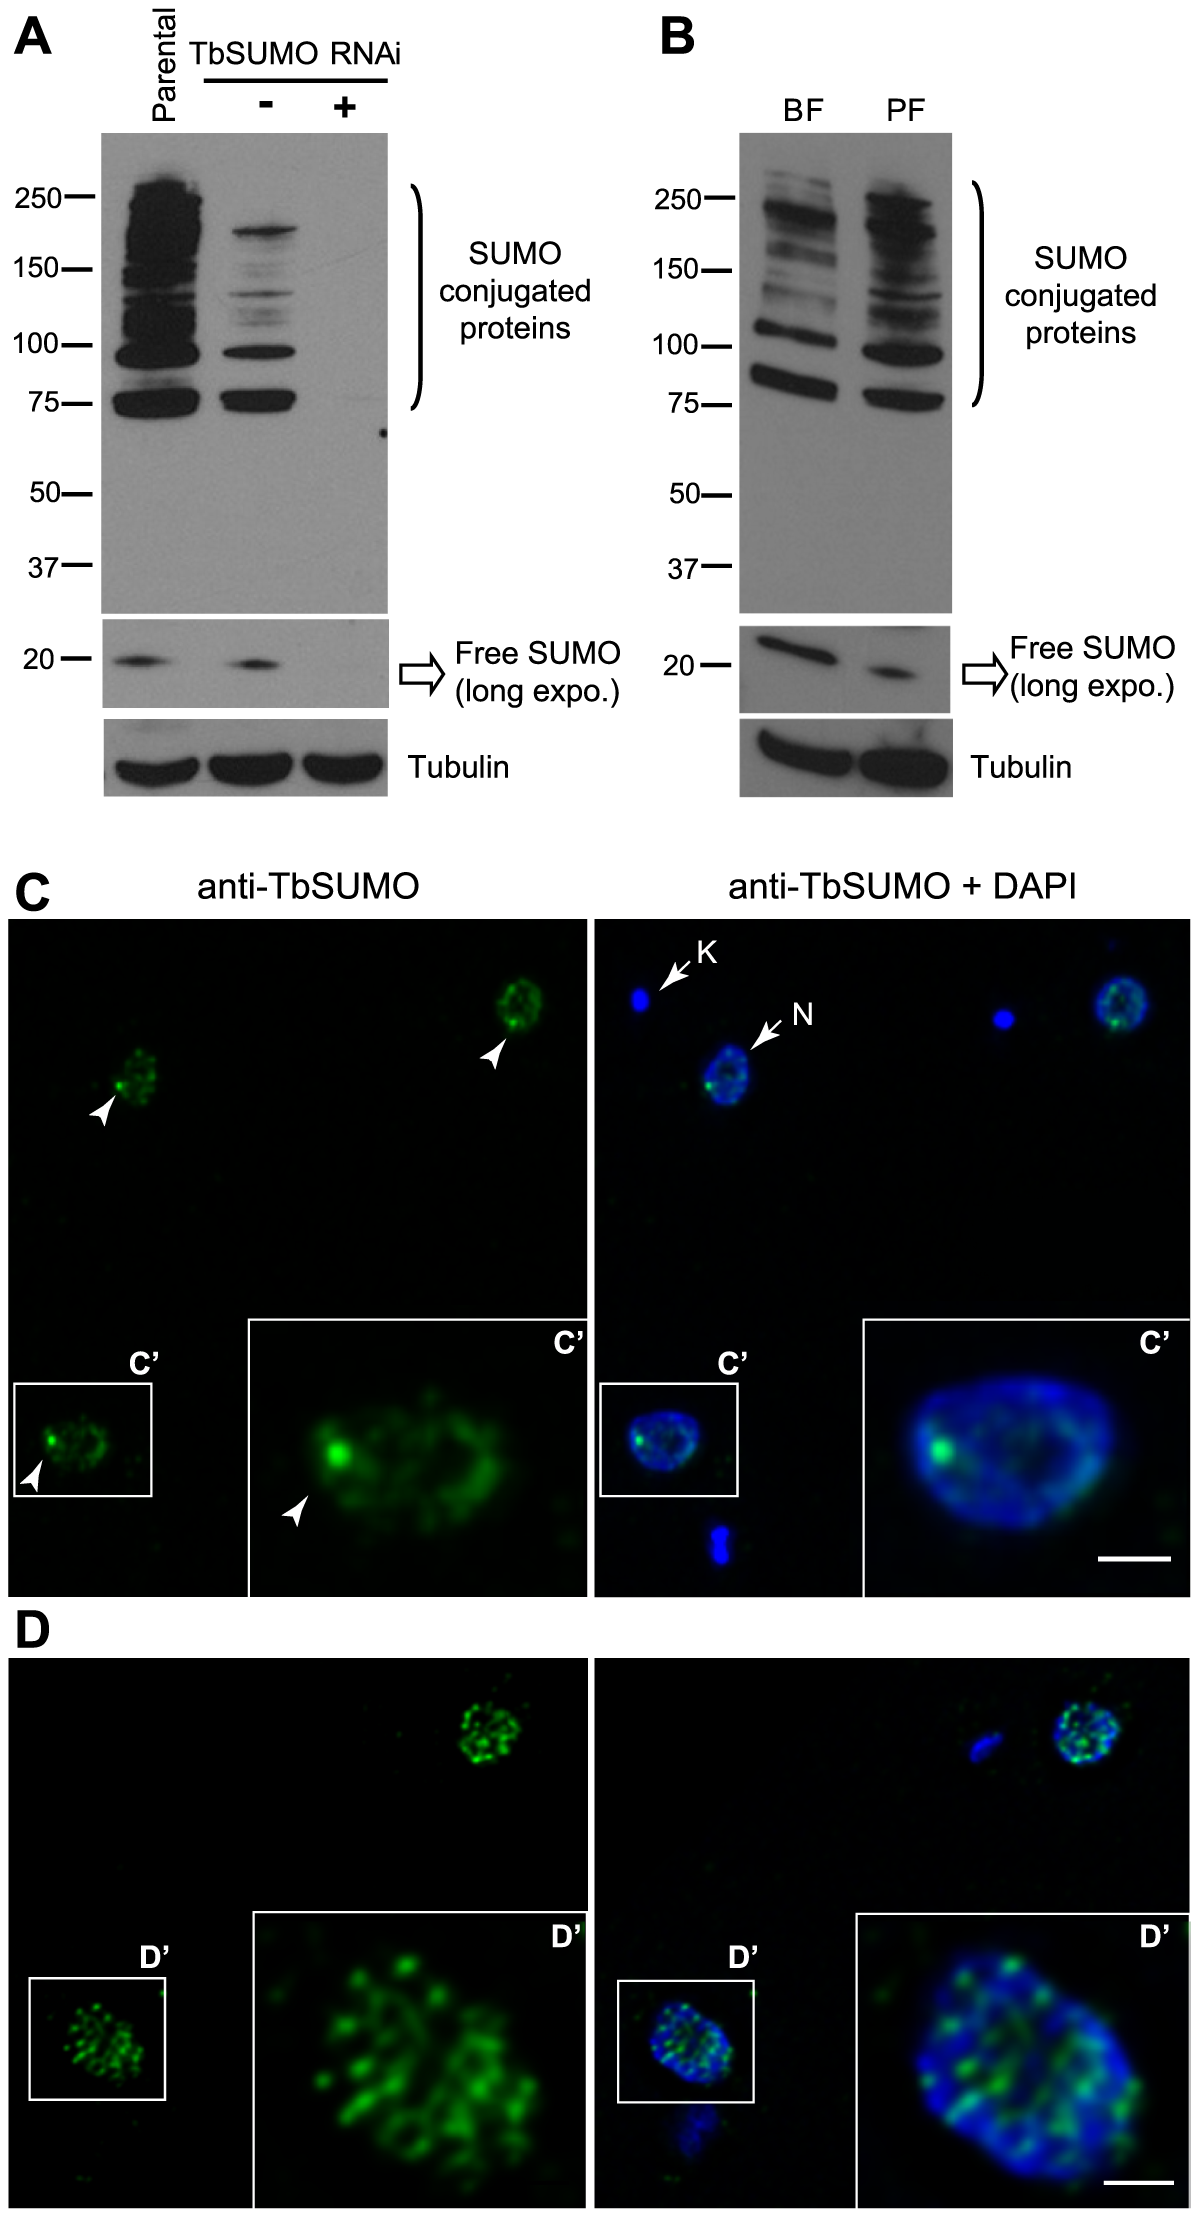 Expression pattern and subcellular localization of <i>T. brucei</i> SUMOylated proteins.